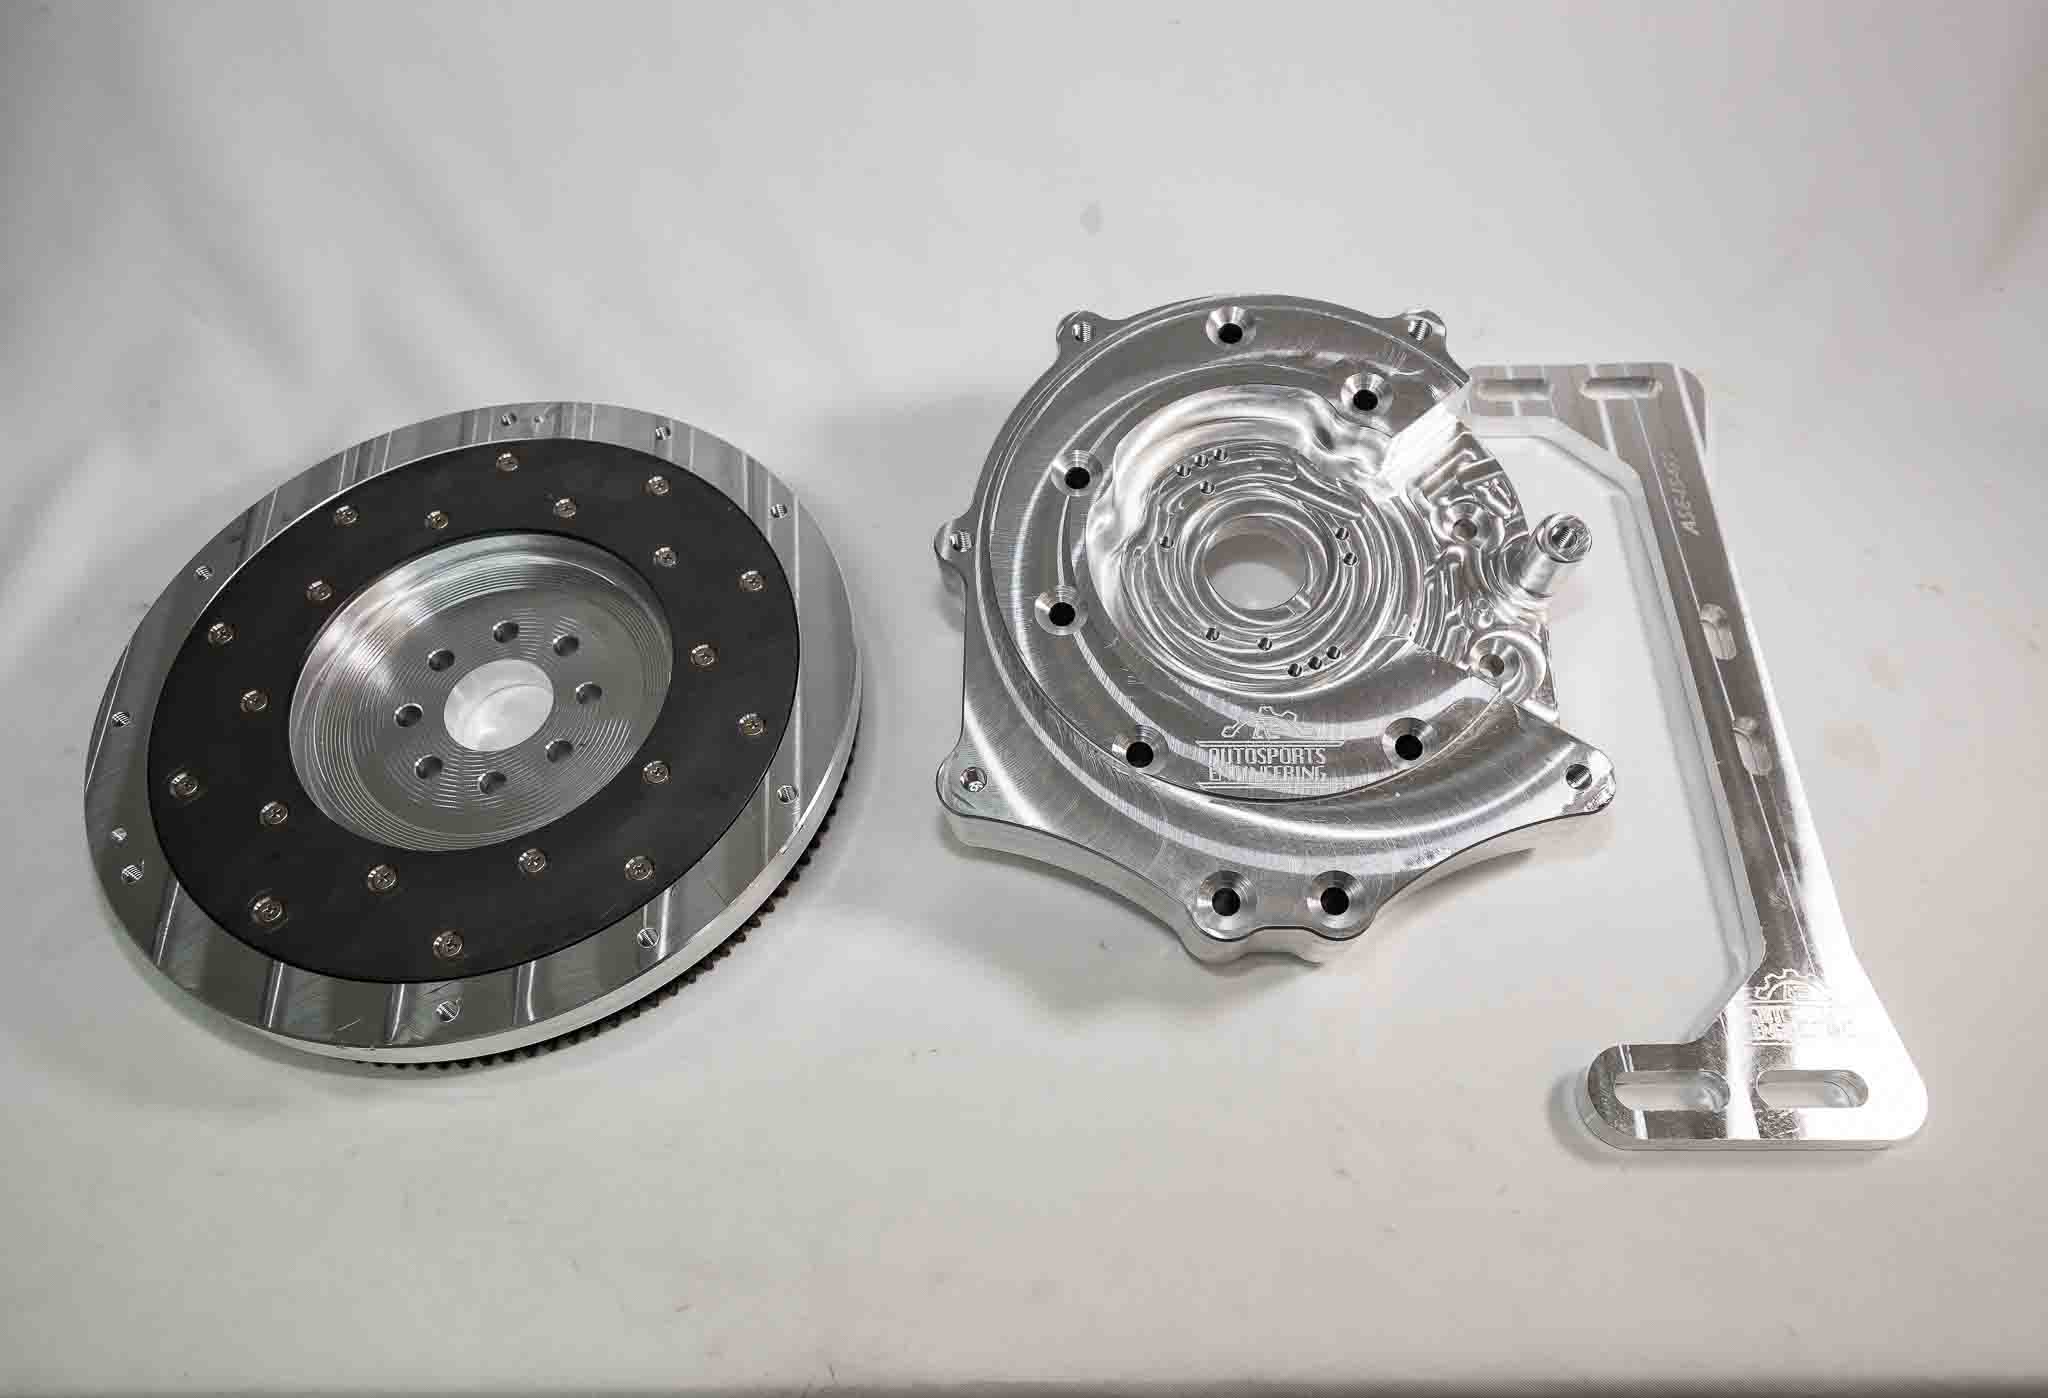 Autosports Engineering 2JZGTE 2JZ 1JZ 2JZGE Engine to 240SX S13 CD009  6-speed Transmission Adapter - Package